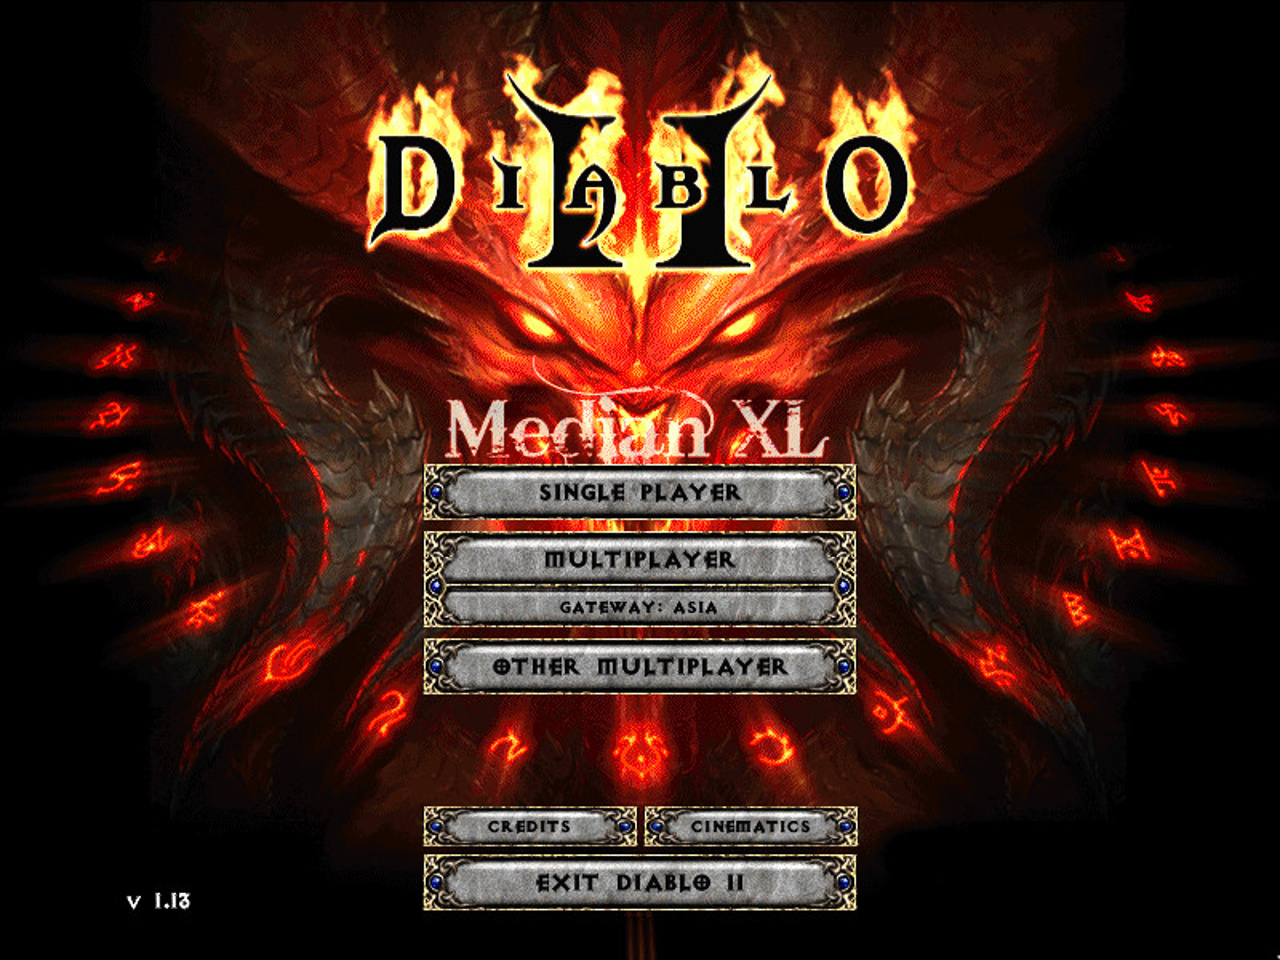 💄 Diablo 2 median xl hero editor 1 13 download | Tools  2019-03-28